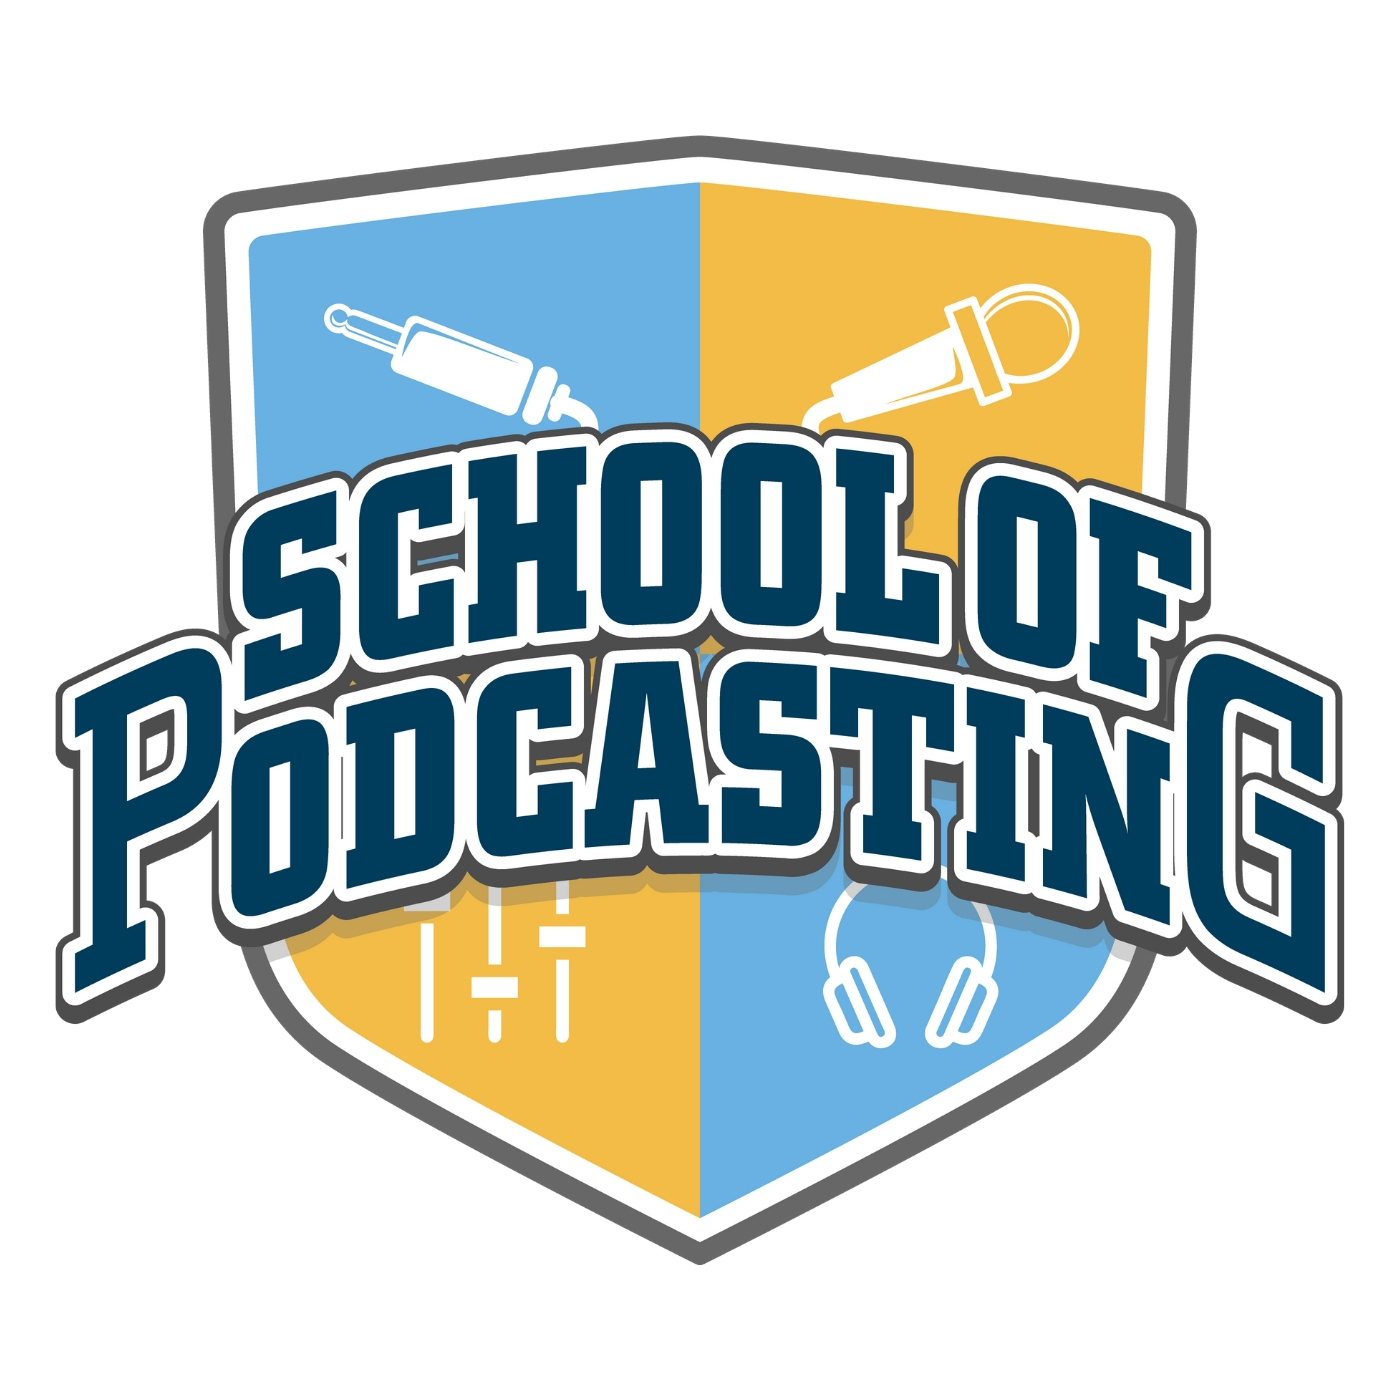 Artwork for Andrew Zarian Podcasting as a Career